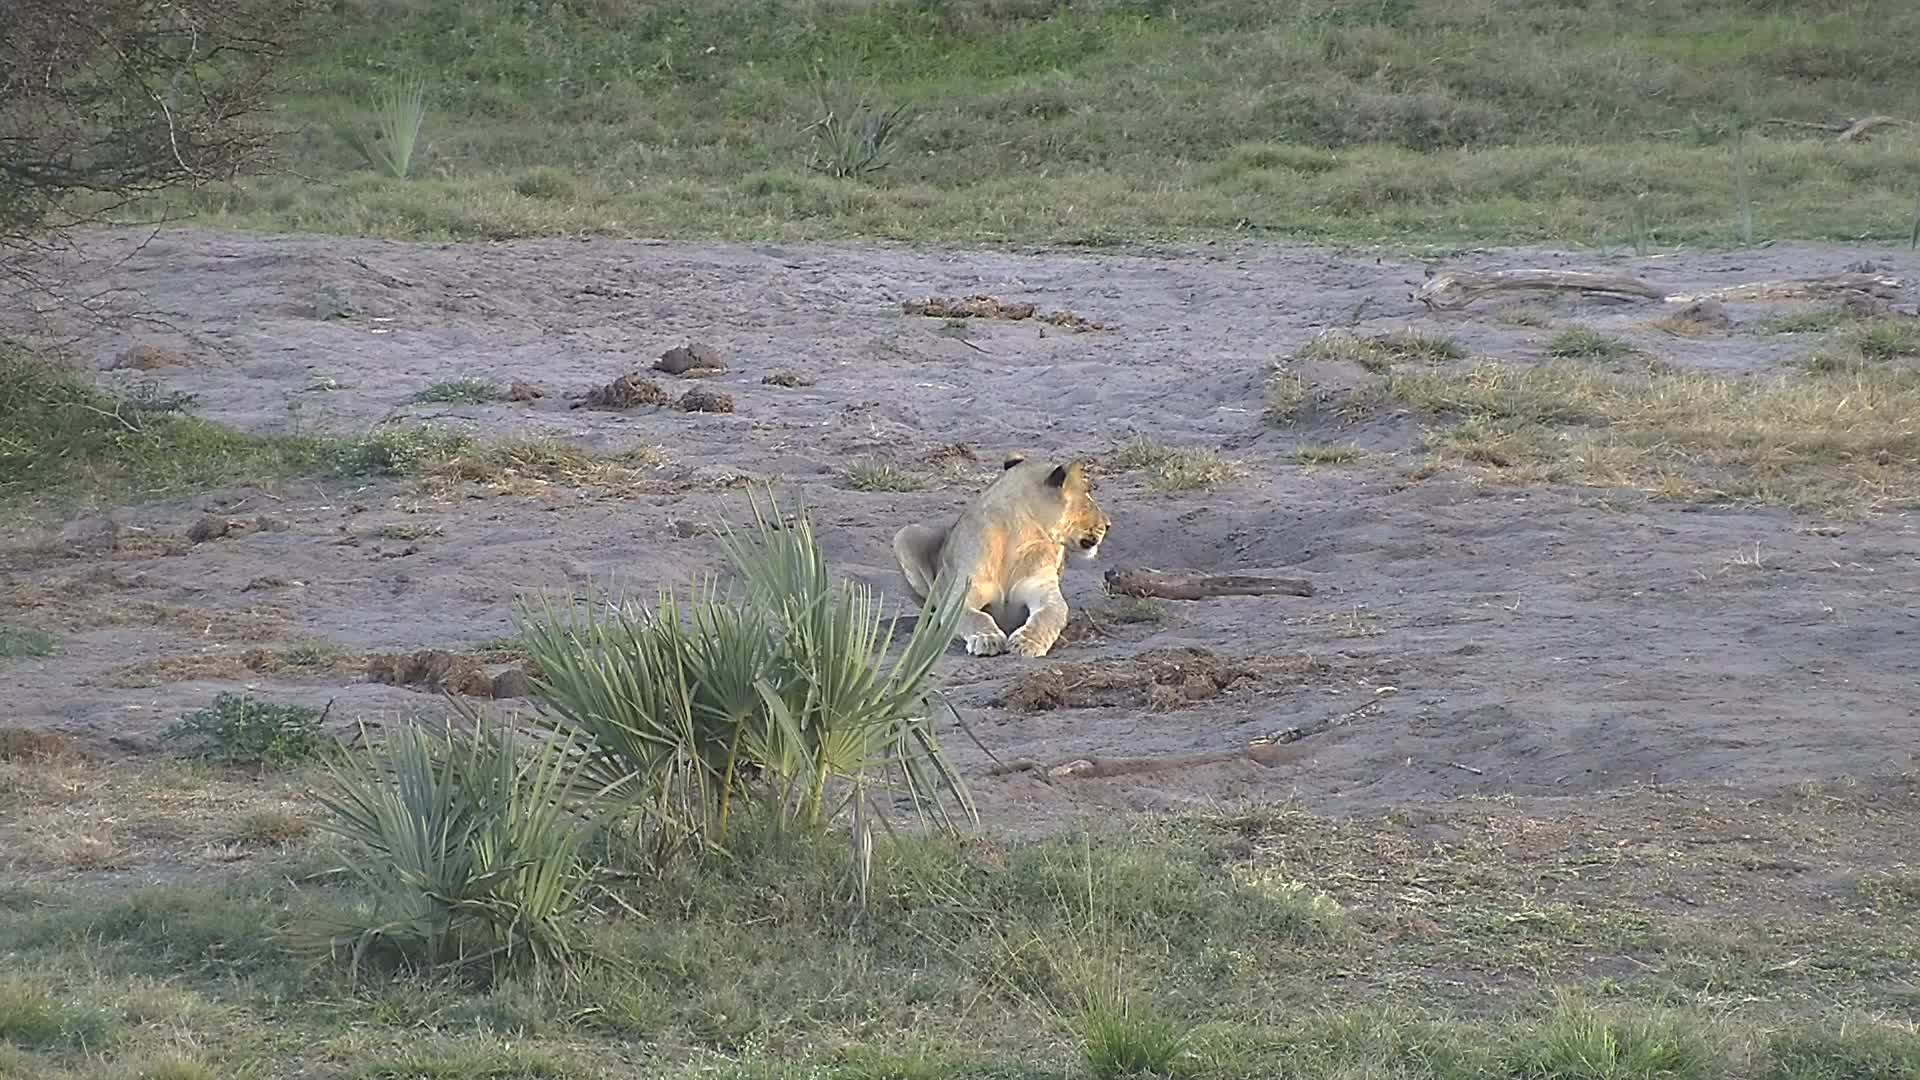 VIDEO:  Lion at the waterhole